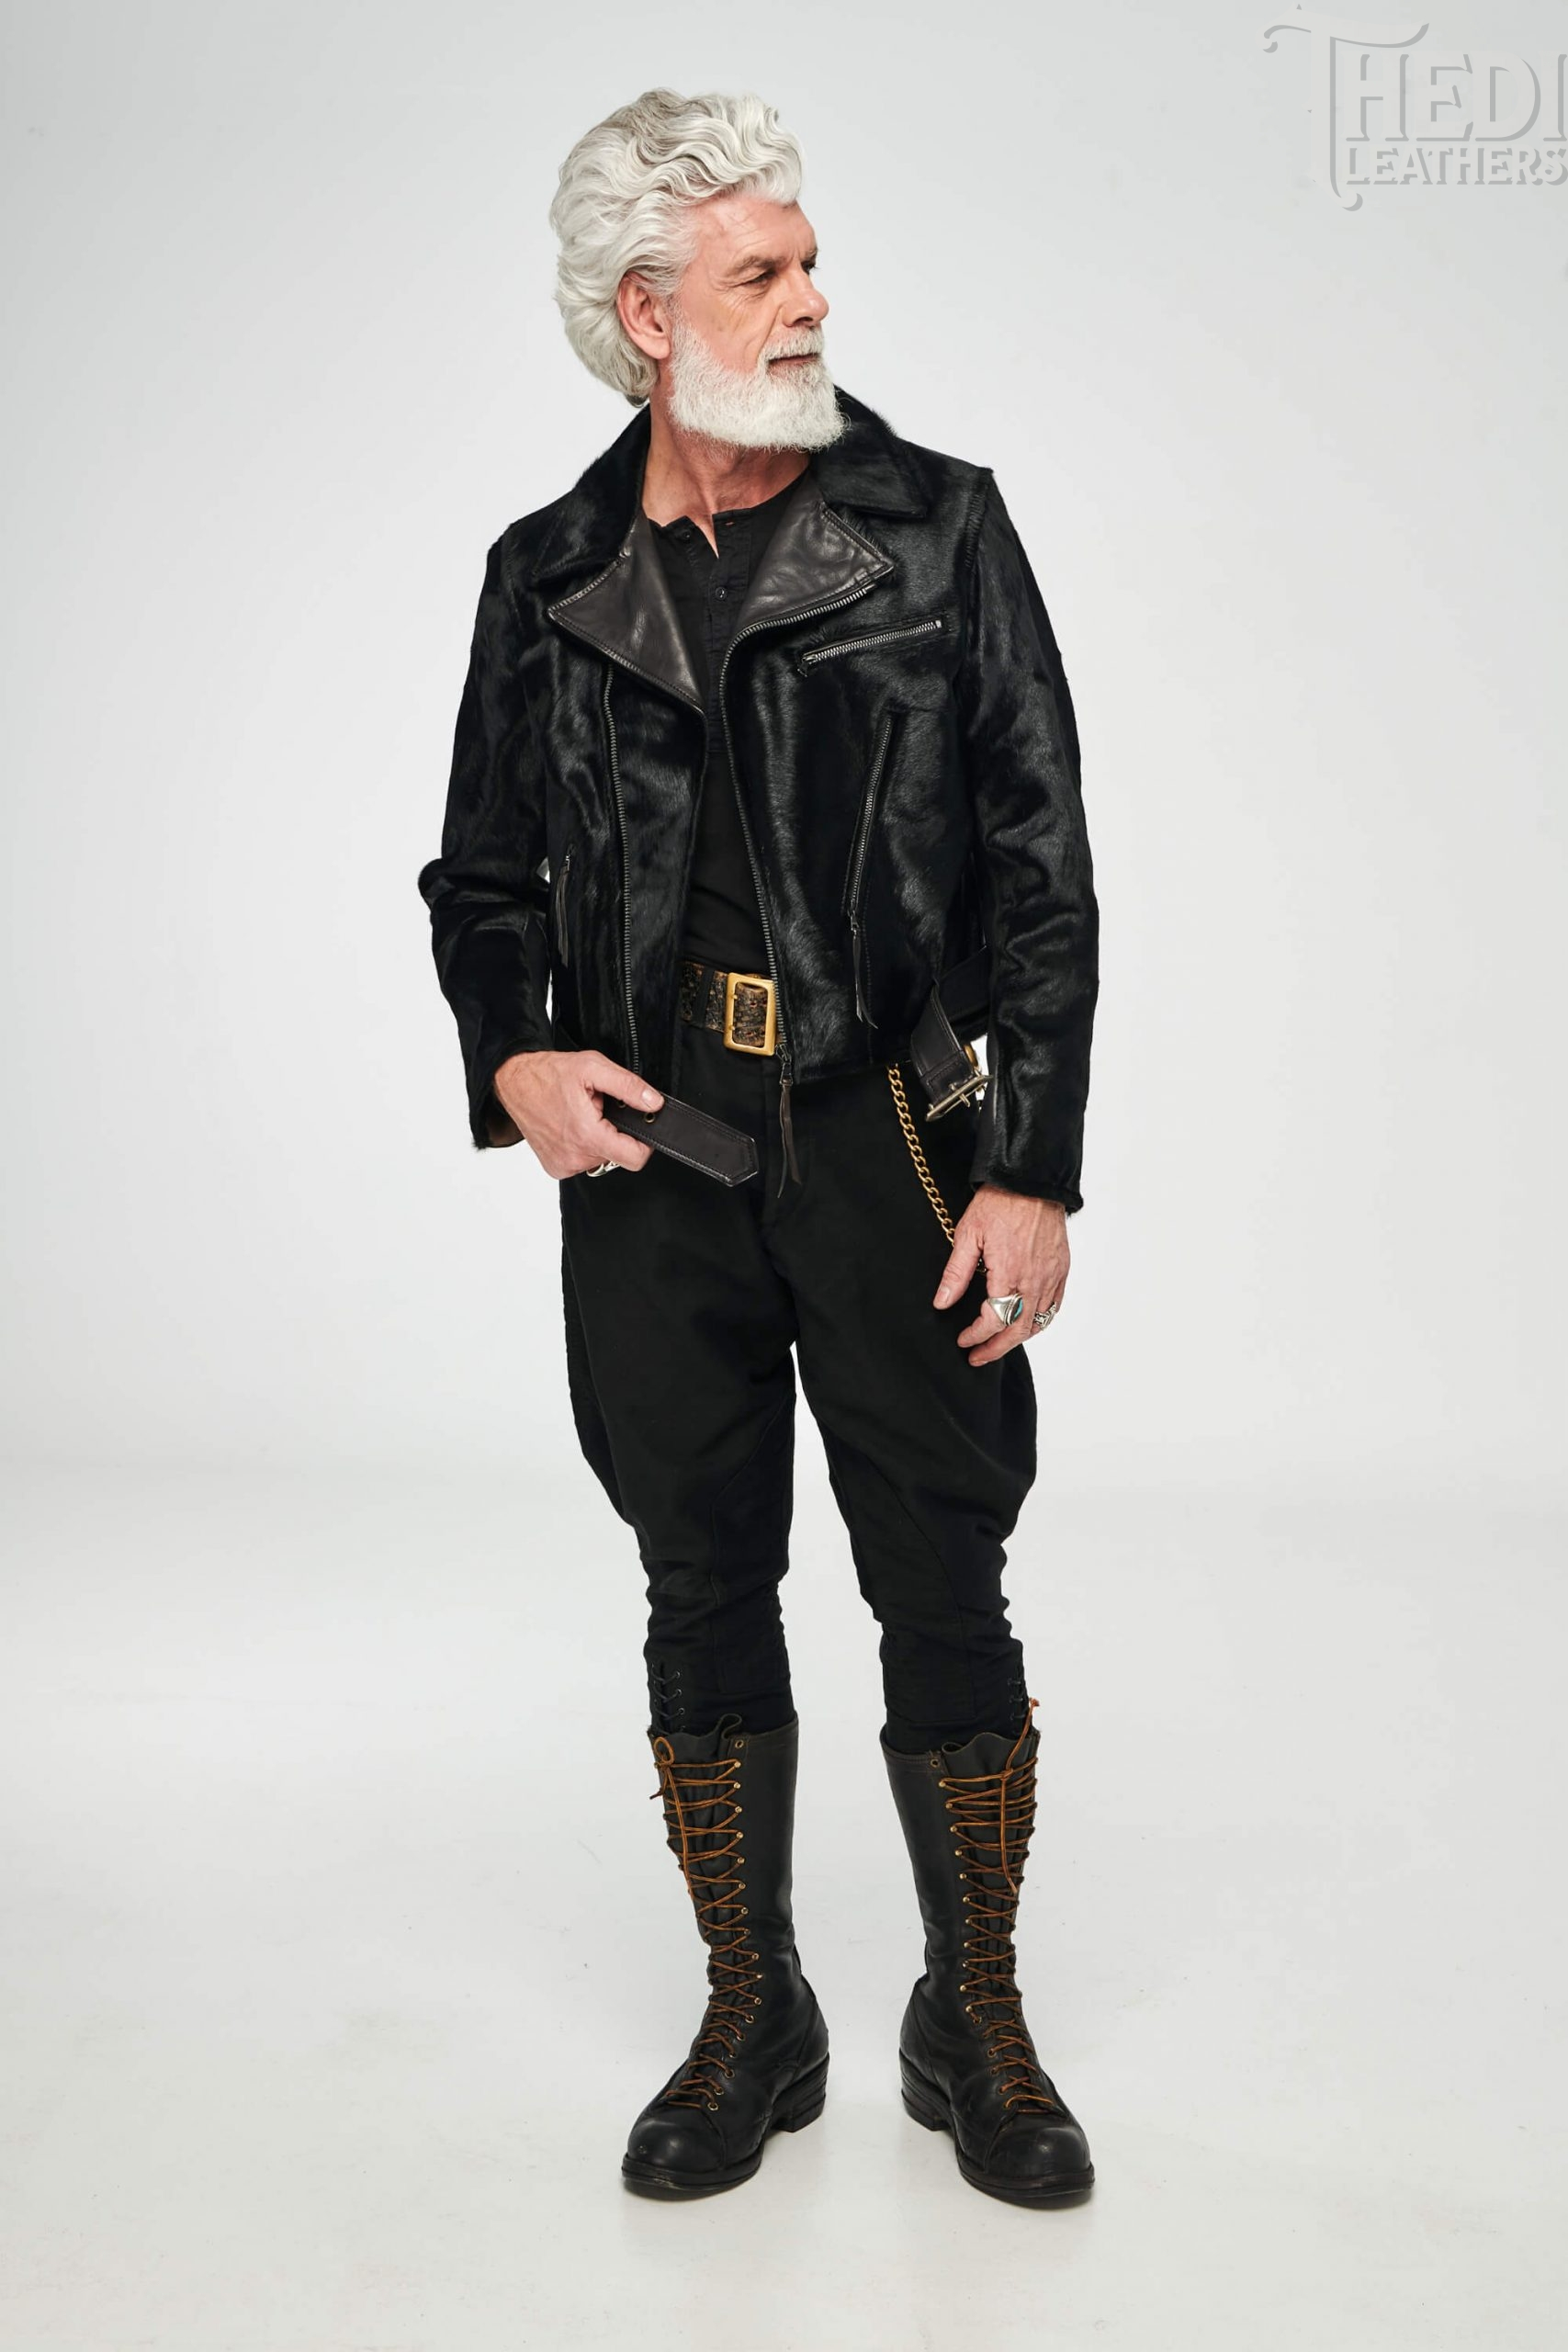 https://thedi-leathers.com/wp-content/uploads/2019/10/MTC-P1279126-LONG-scaled.jpg